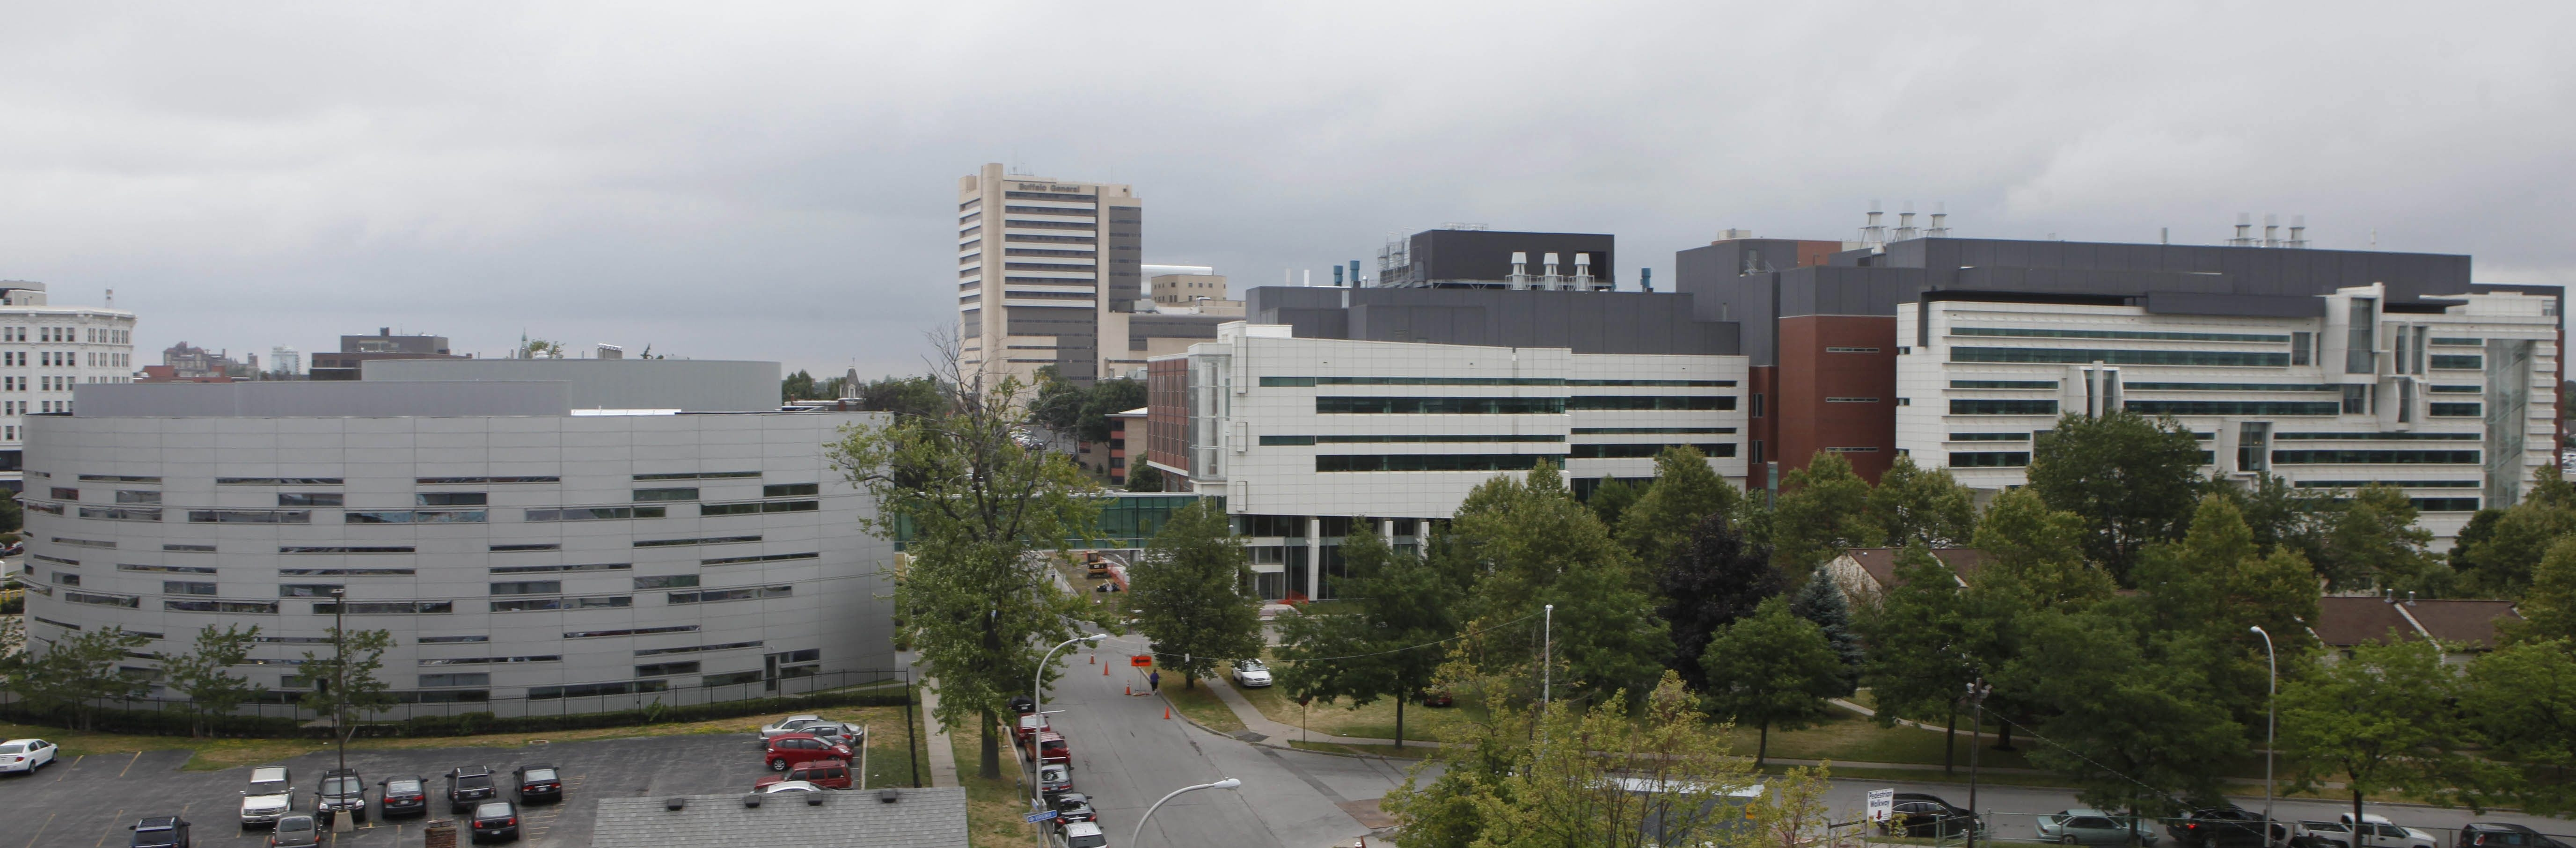 """The Buffalo Niagara Medical Campus is helping to revive Buffalo's economy. In almost every successful city, universities and medical centers – """"eds and meds"""" – are bedrock institutions."""